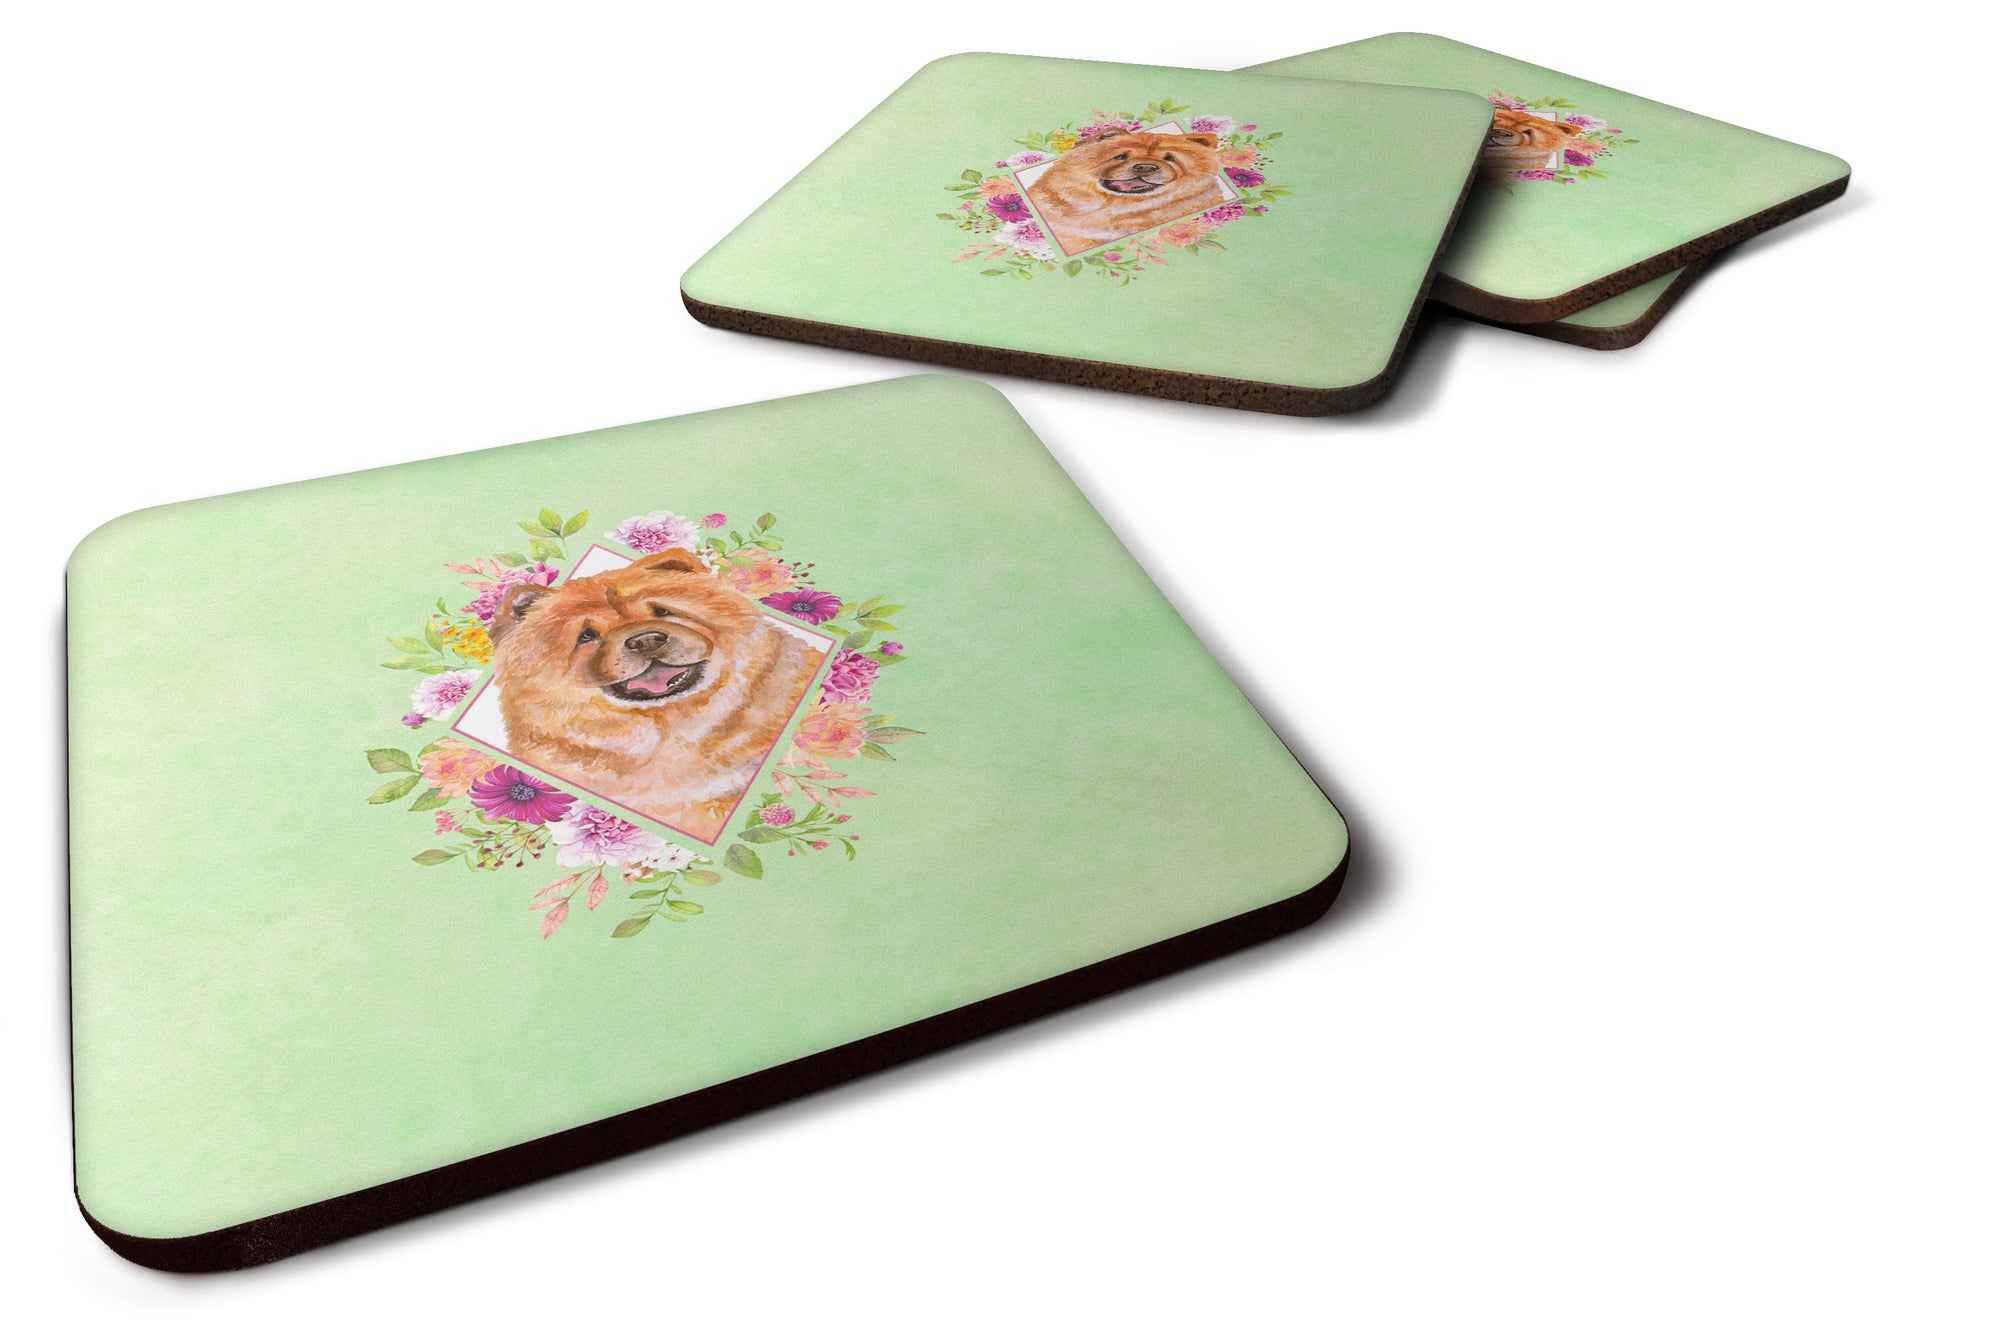 Set of 4 Chow Chow #1 Green Flowers Foam Coasters Set of 4 CK4291FC by Caroline's Treasures